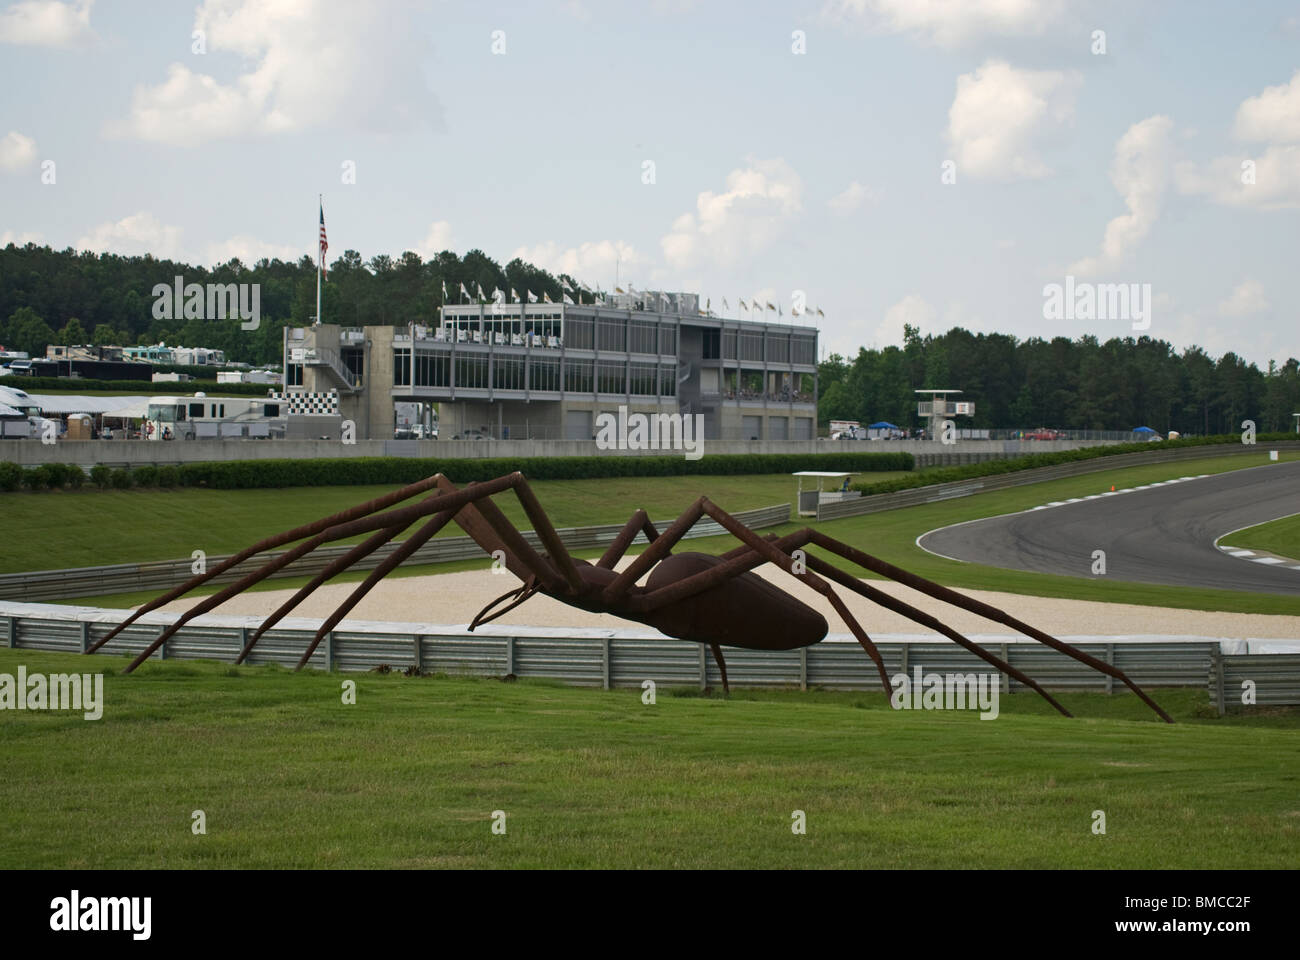 Barber Motorsports Park >> The Spider And The Infield At Barber Motorsports Park Near Stock